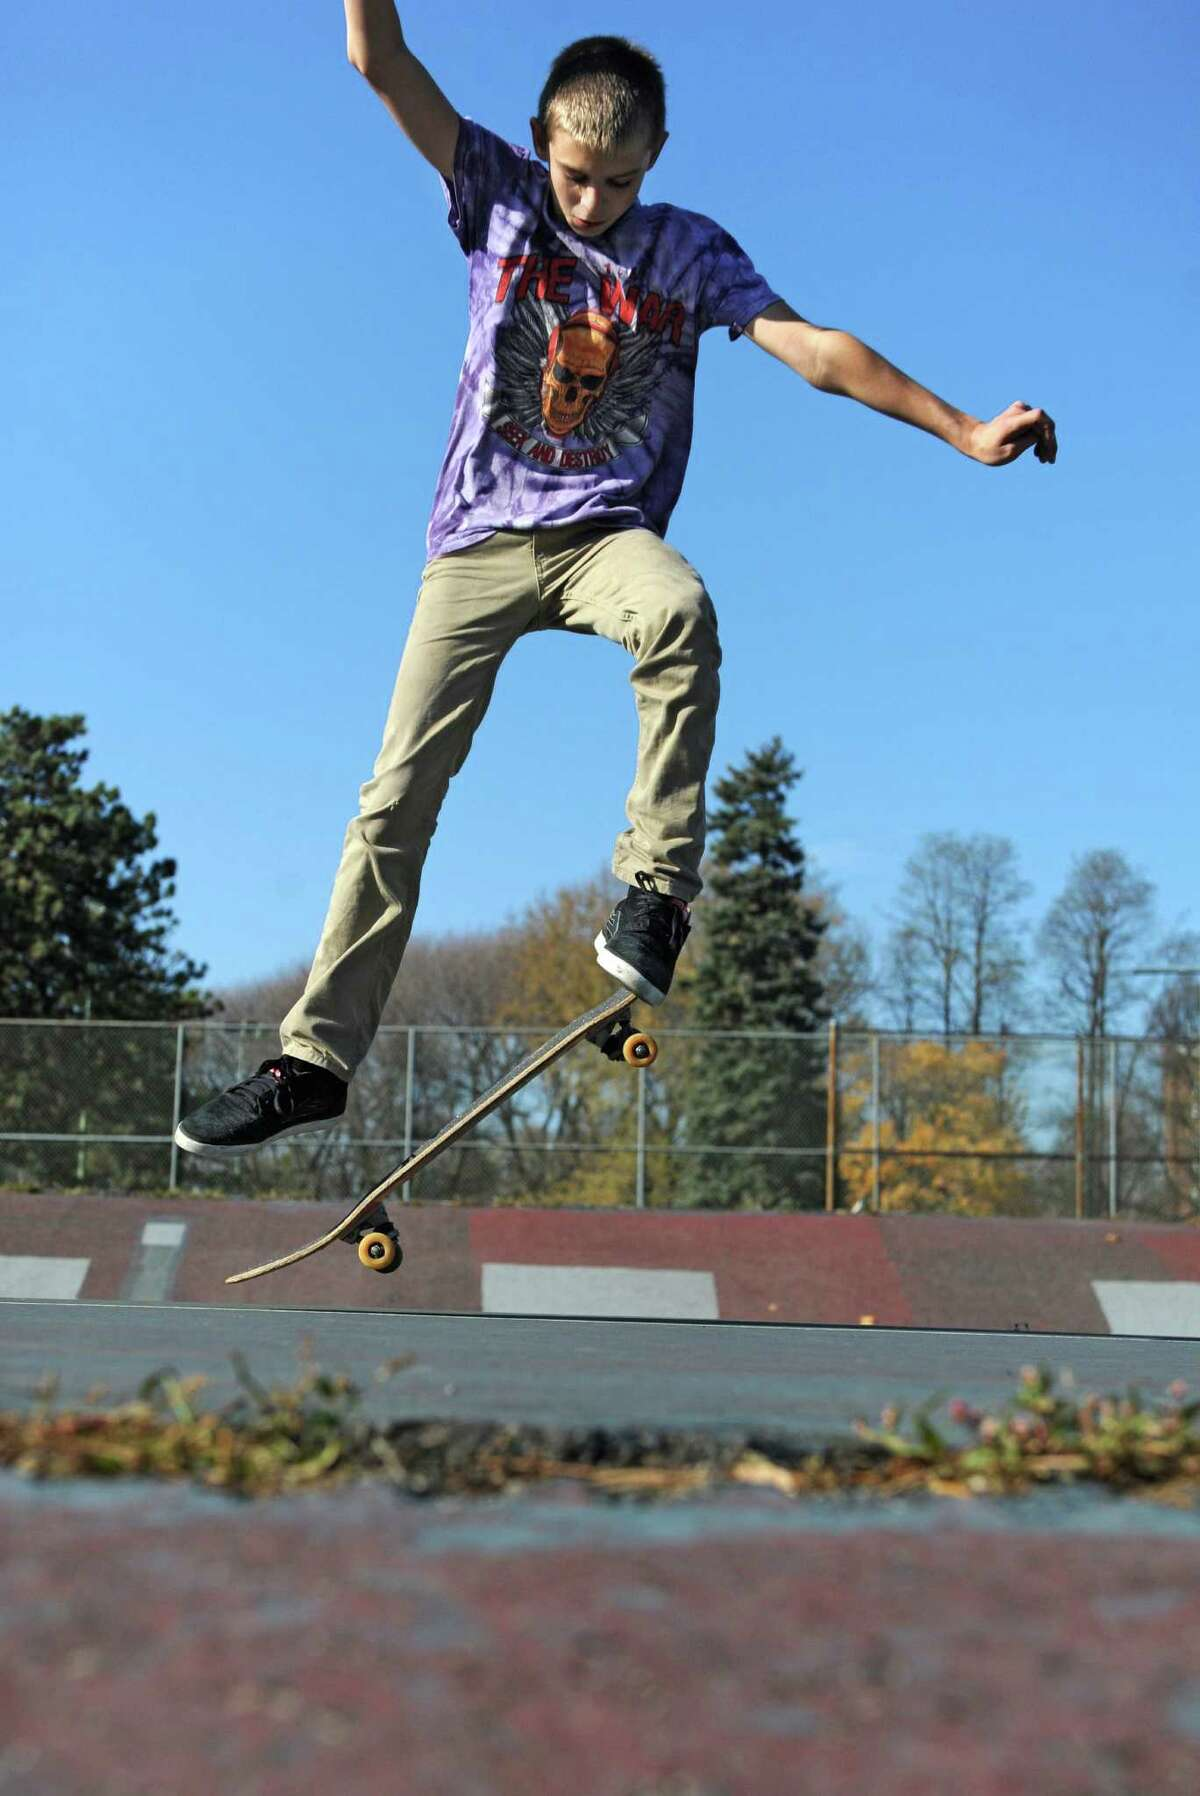 Skateboarder Dylan Allman, 14 of Ravena, works on his moves at the dilapidated tennis courts in Washington Park on Tuesday, Nov. 11, 2014 in Albany, N.Y. These four dilapidated tennis courts in Washington Park could become the city's first public skateboard park. The Recreation Department is soliciting public input on that possibility - as well as suggestions for other potential sites - starting Thursday night at a public session from 6 p.m. to 8 p.m. at Bleecker Stadium. (Lori Van Buren / Times Union) ORG XMIT: MER2015121114340929